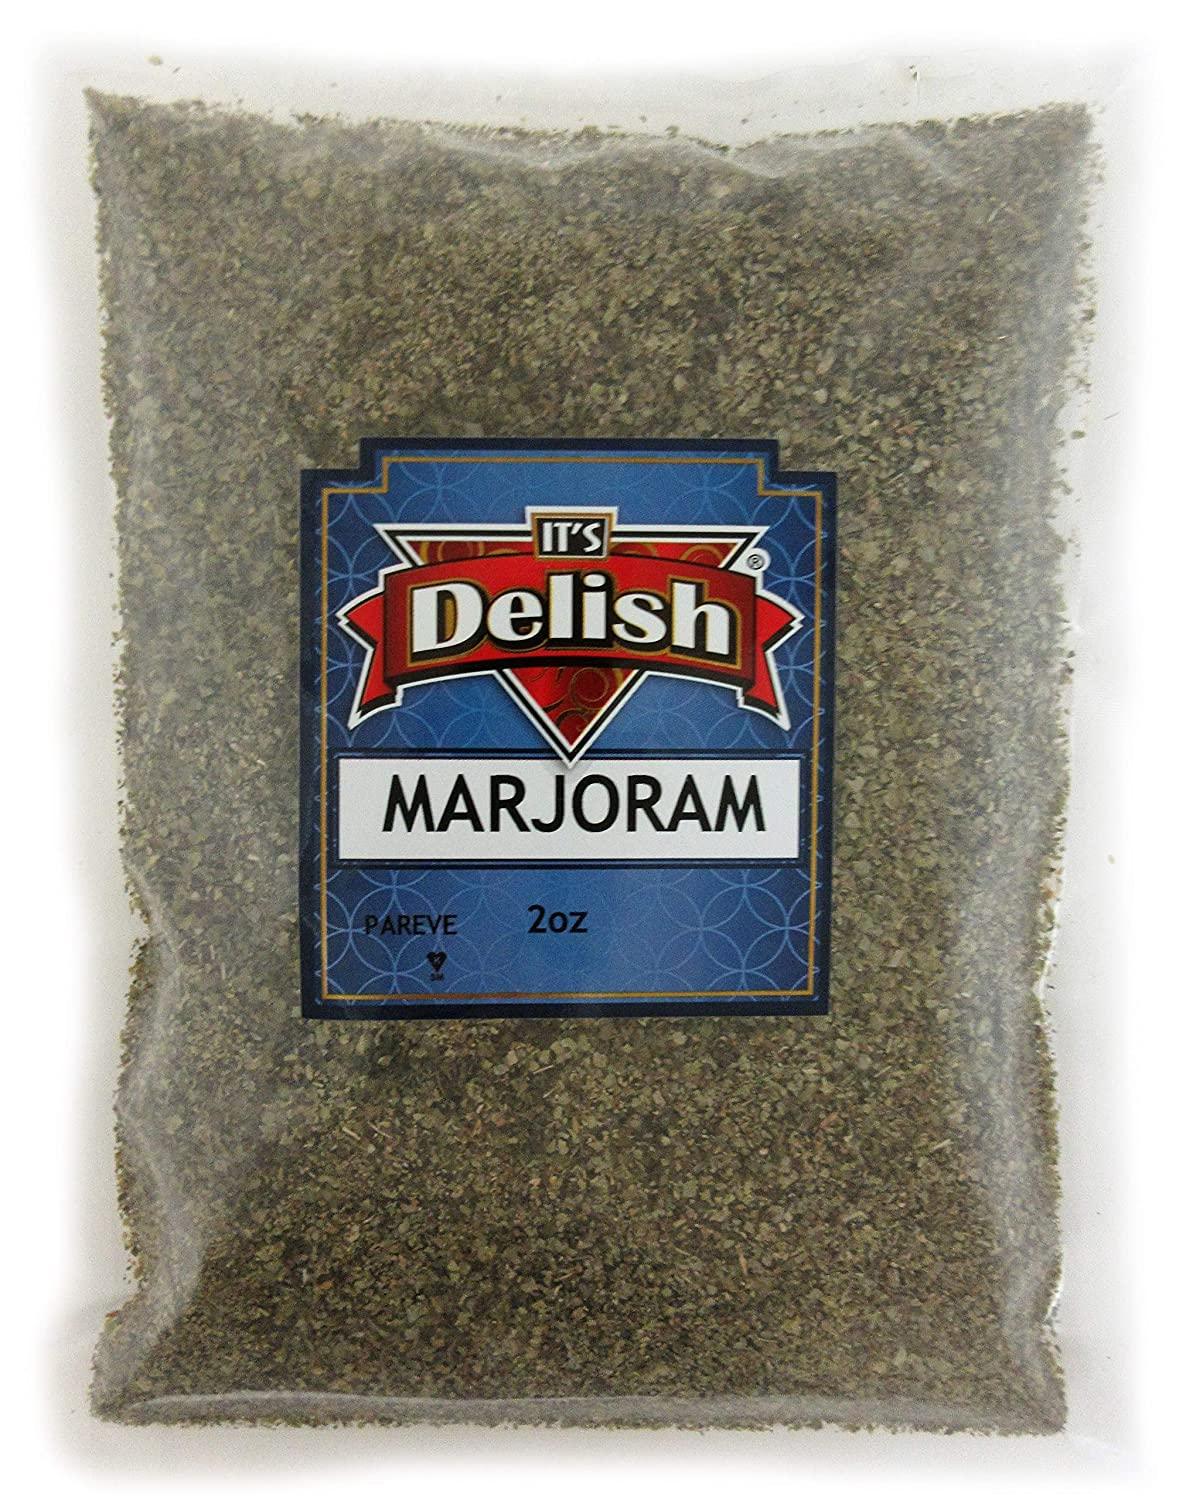 Marjoram Leaves All Natural Max 44% OFF by Bag Oz 2 Delish Its Max 49% OFF